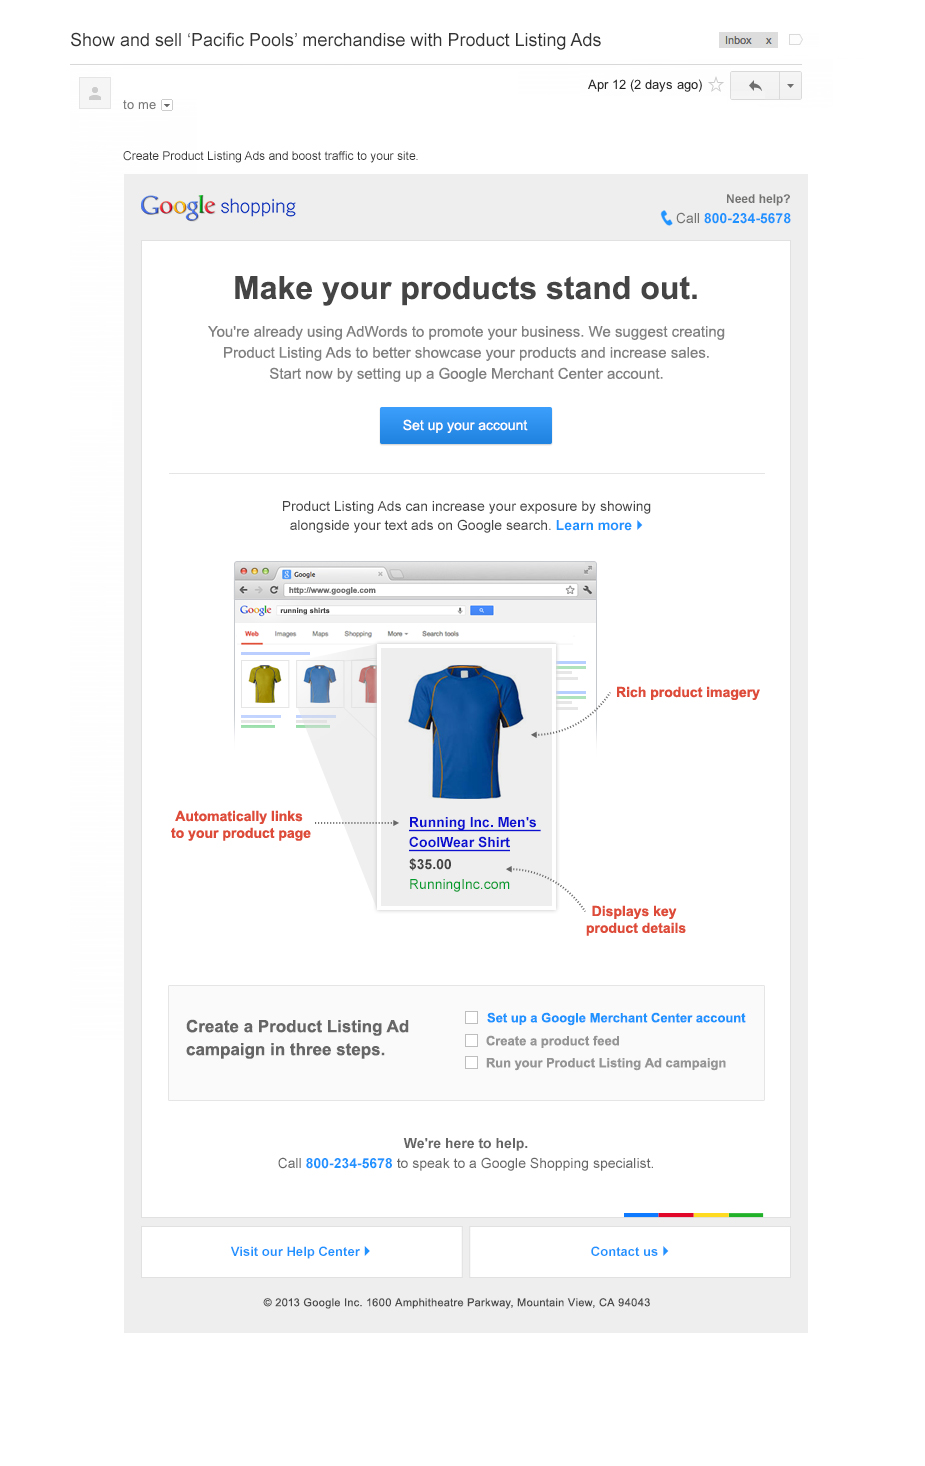 Boe Gatiss - 'Stand Out' Email for Google Shopping